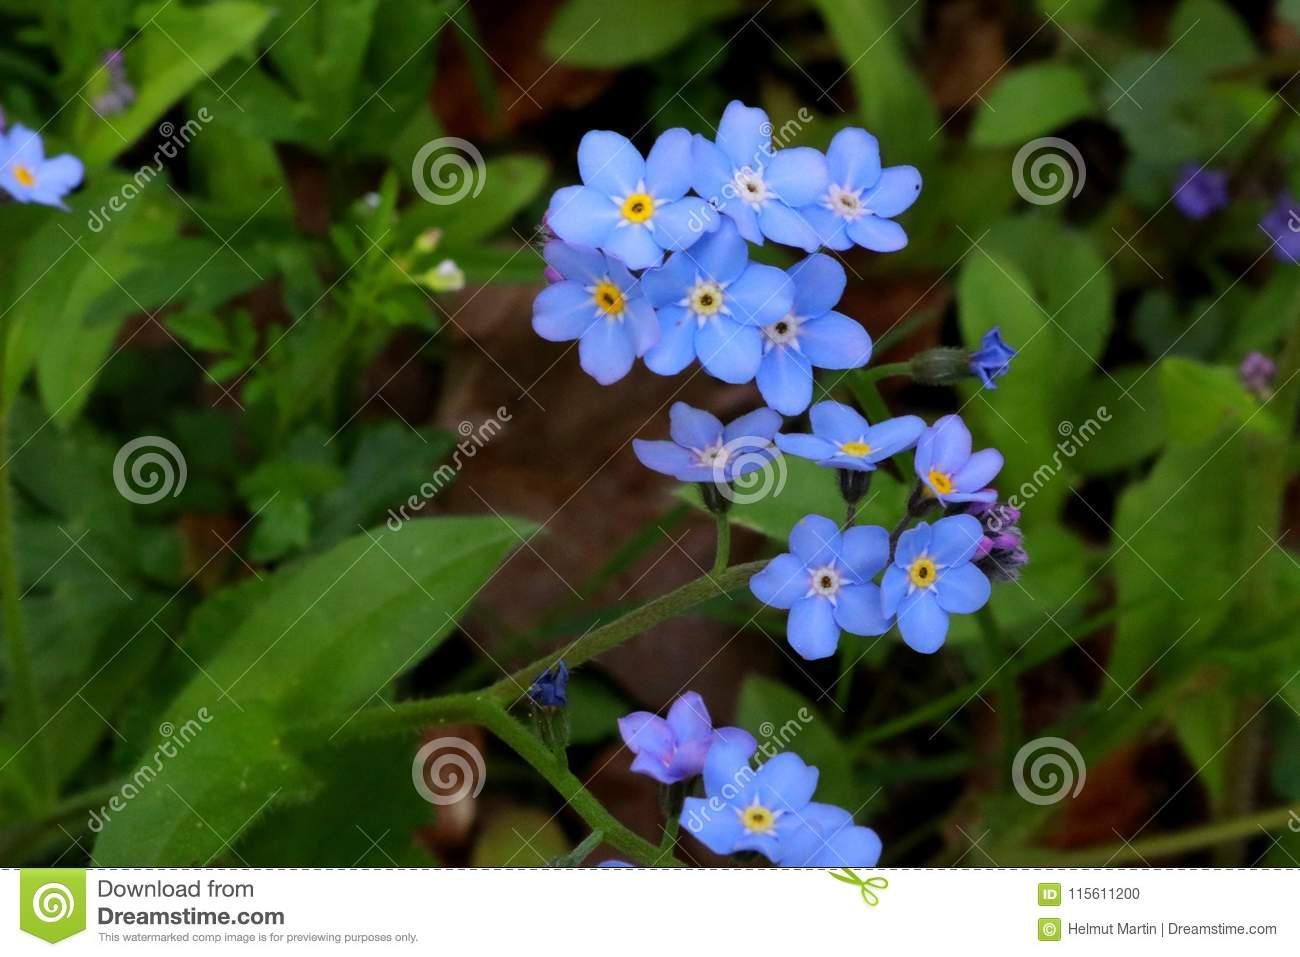 Forget me not myosotis flowers in a close up stock photo image of download forget me not myosotis flowers in a close up stock photo image izmirmasajfo